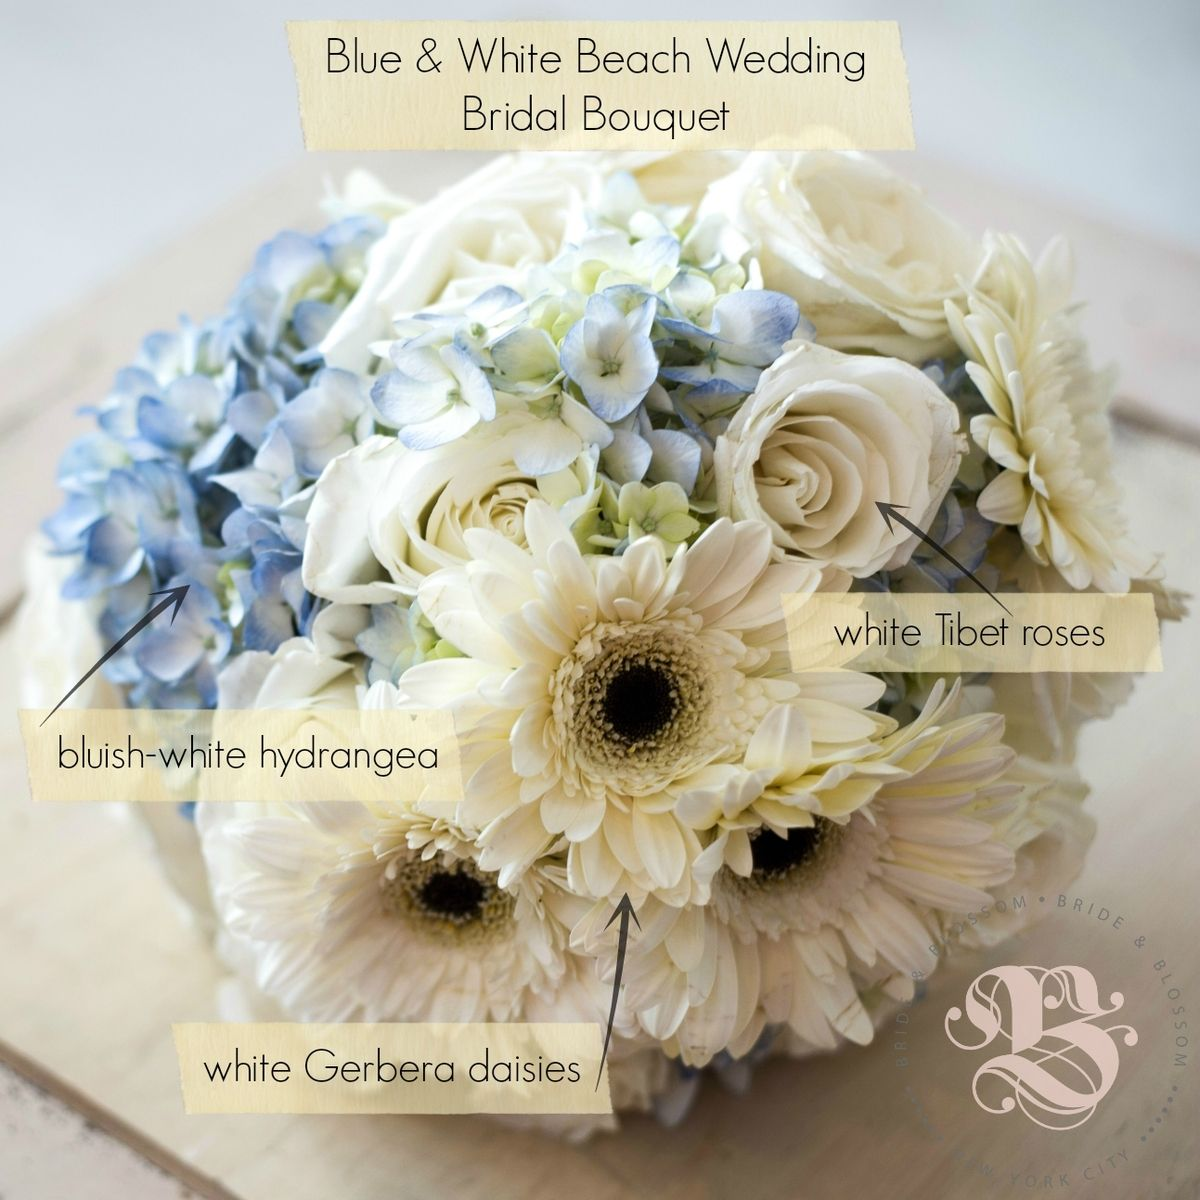 Blue white bridal bouquet recipe by bride blossom nycs only blue bridal bouquet recipe westhampton bath tennis dear stacey wedding photography1 izmirmasajfo Image collections